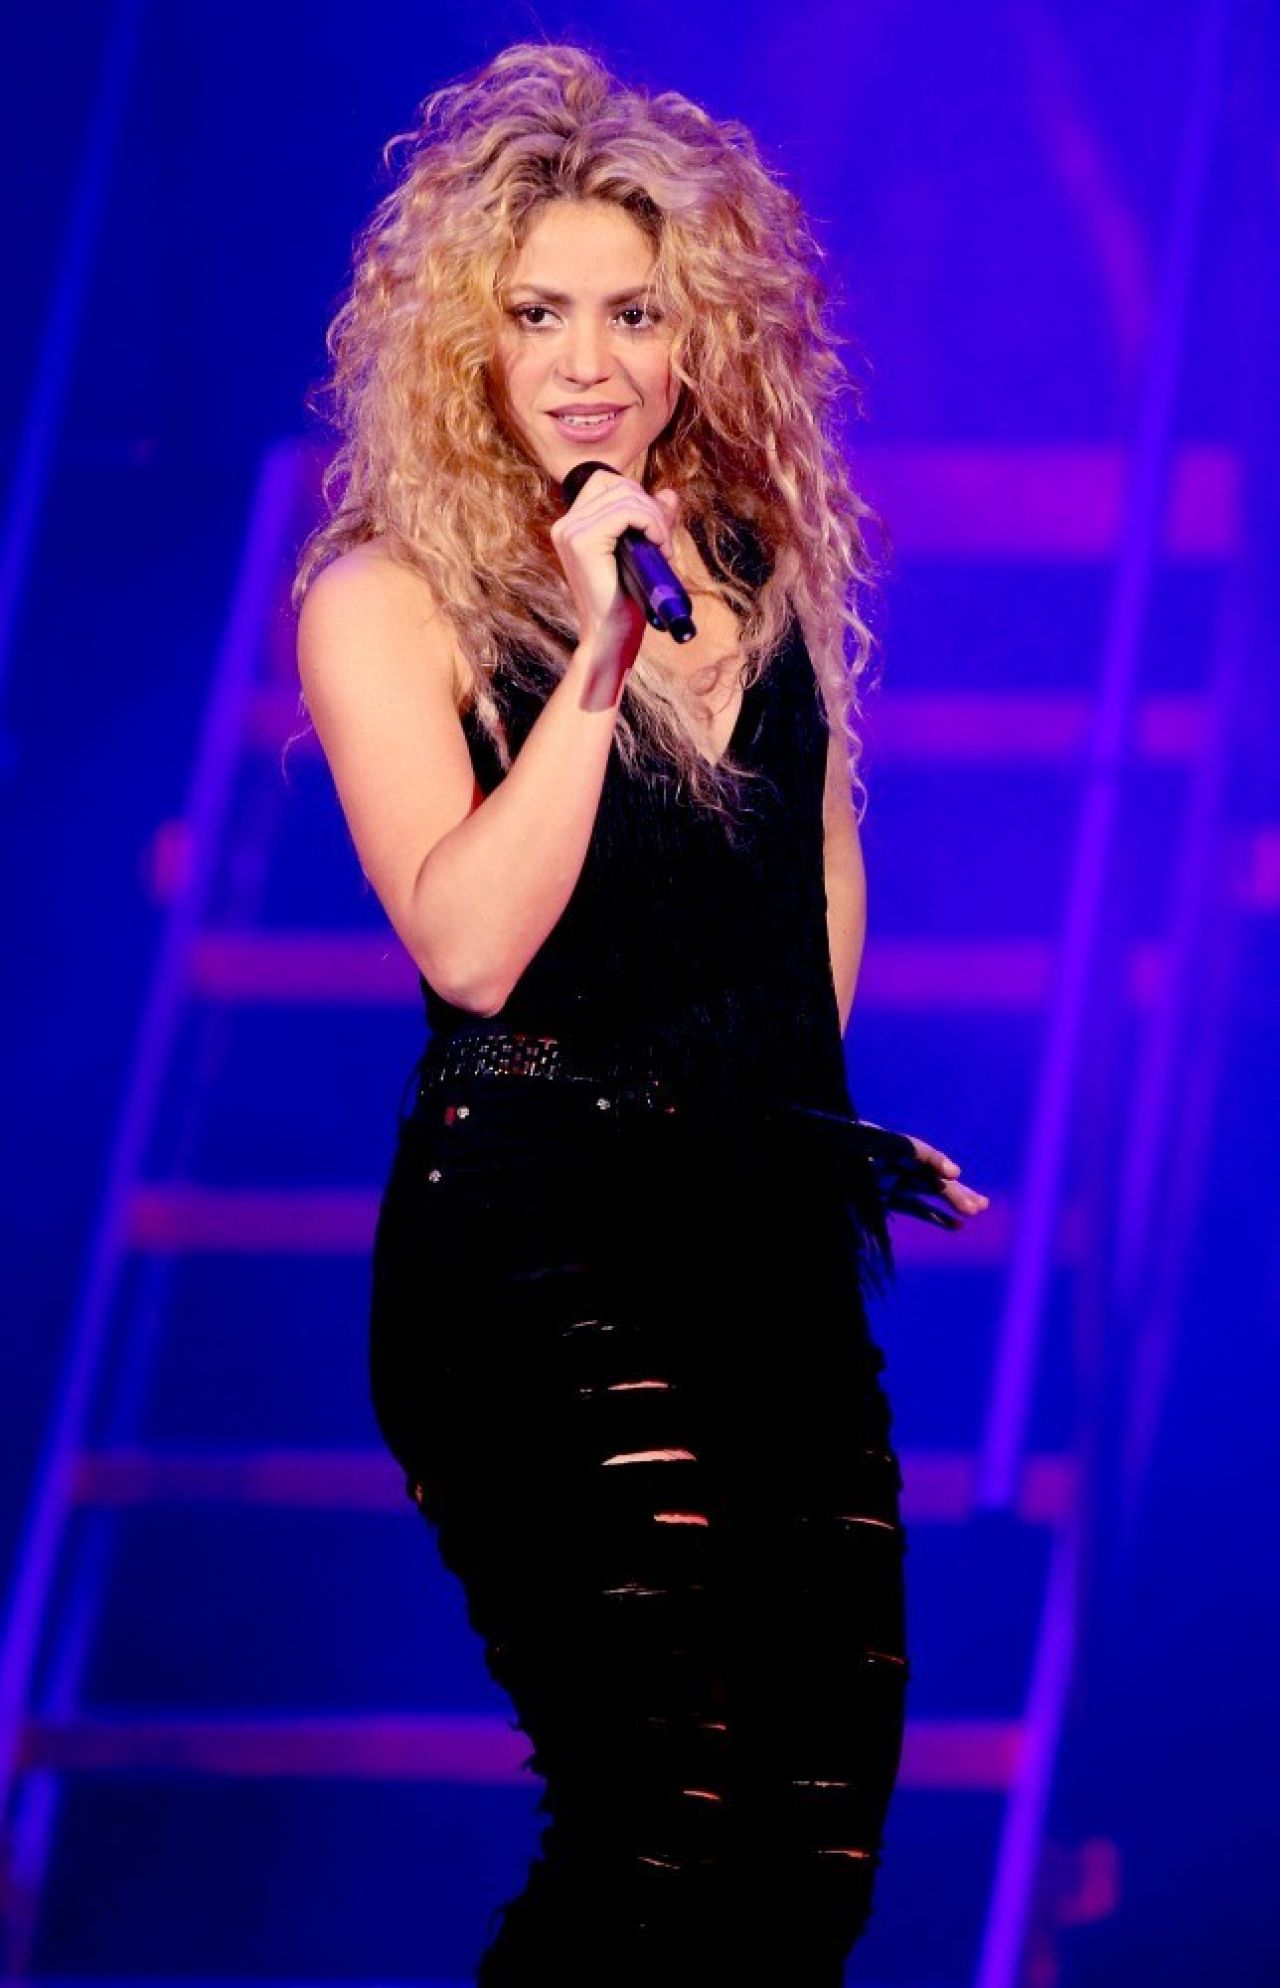 Shakira at the T-Mobil Public Promo Concert in Bryant Park, New York City